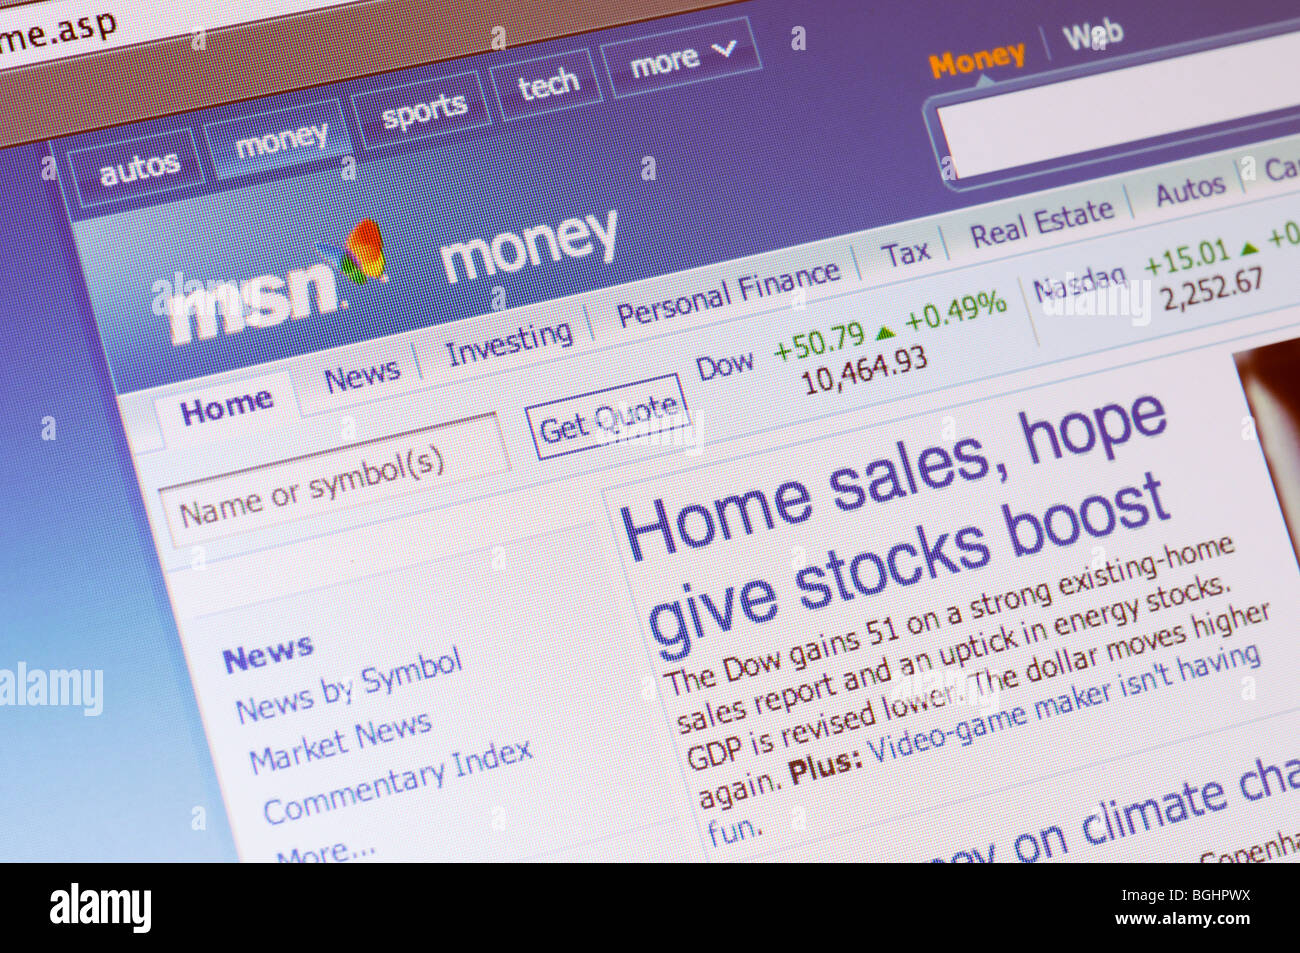 Msn Stock Quotes Msn Money Website Stock Photo Royalty Free Image 27436022  Alamy